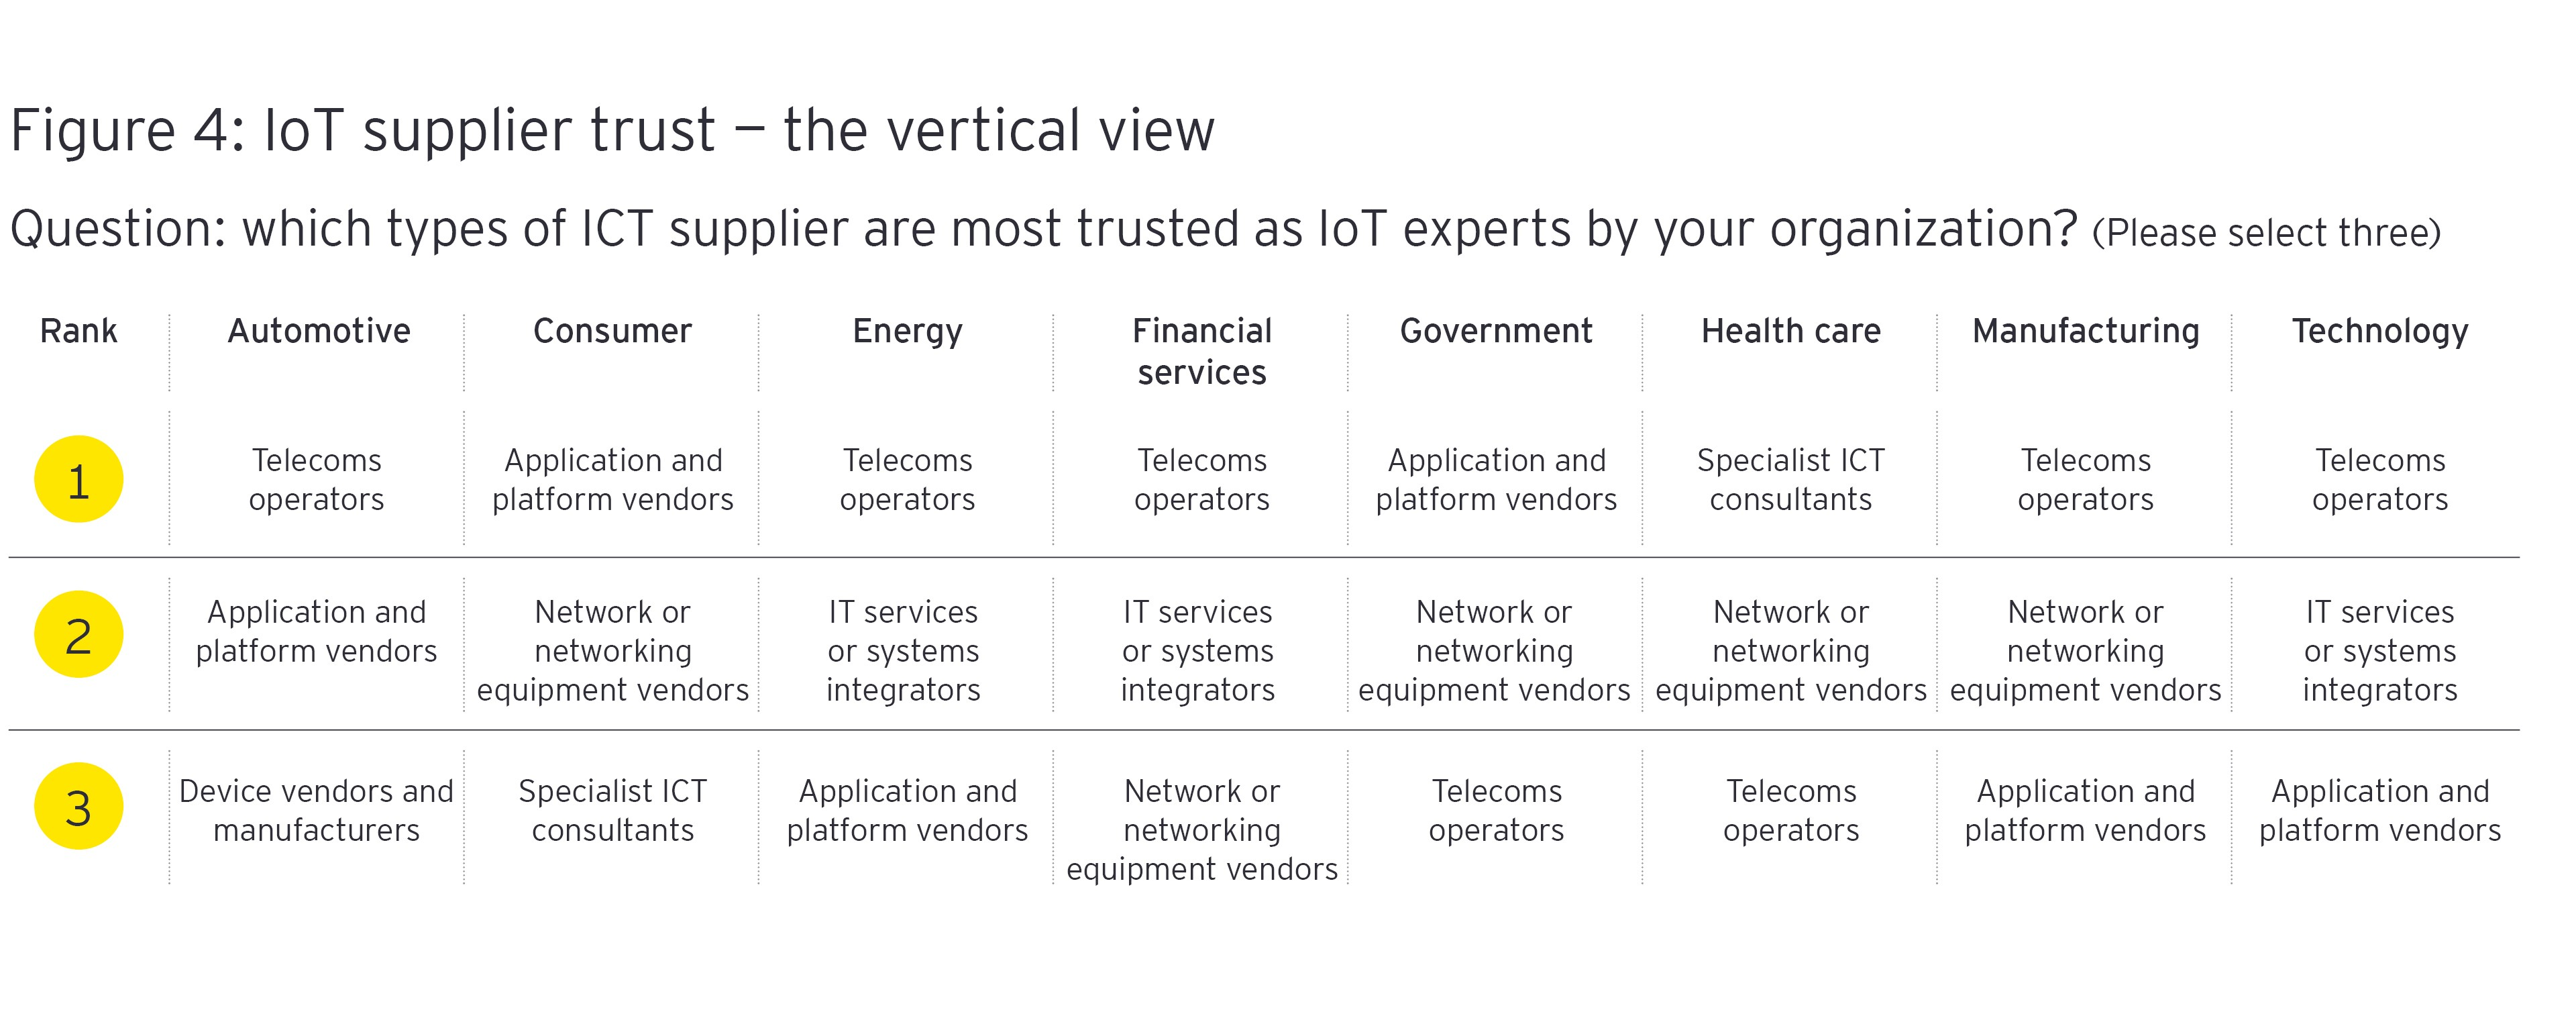 IoT supplier trust - the vertical view